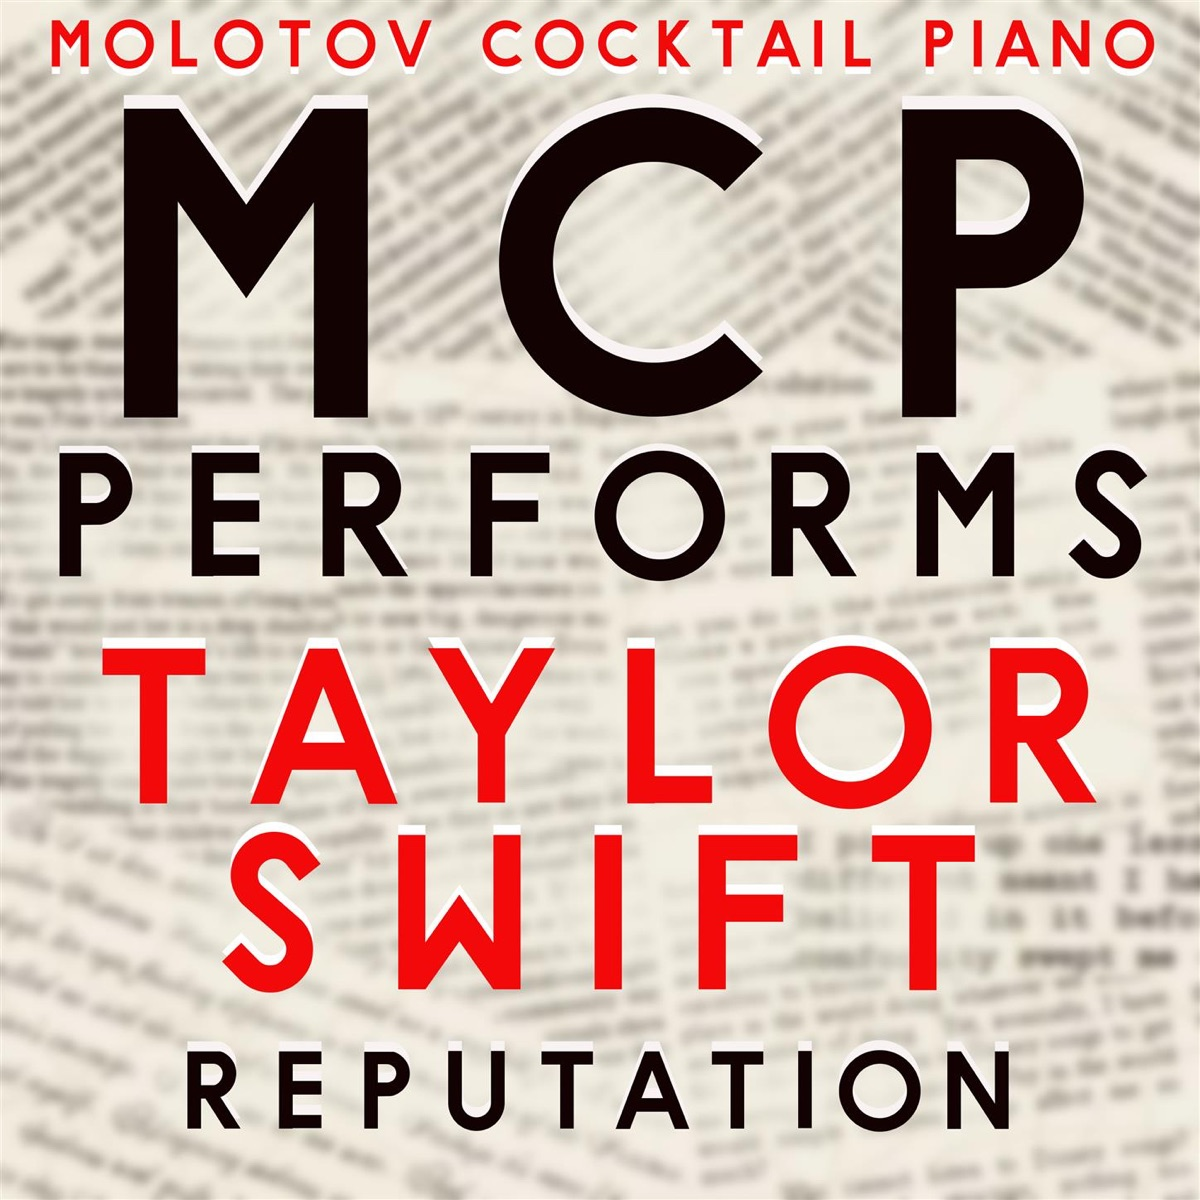 MCP Performs Taylor Swift Reputation Instrumental Molotov Cocktail Piano CD cover